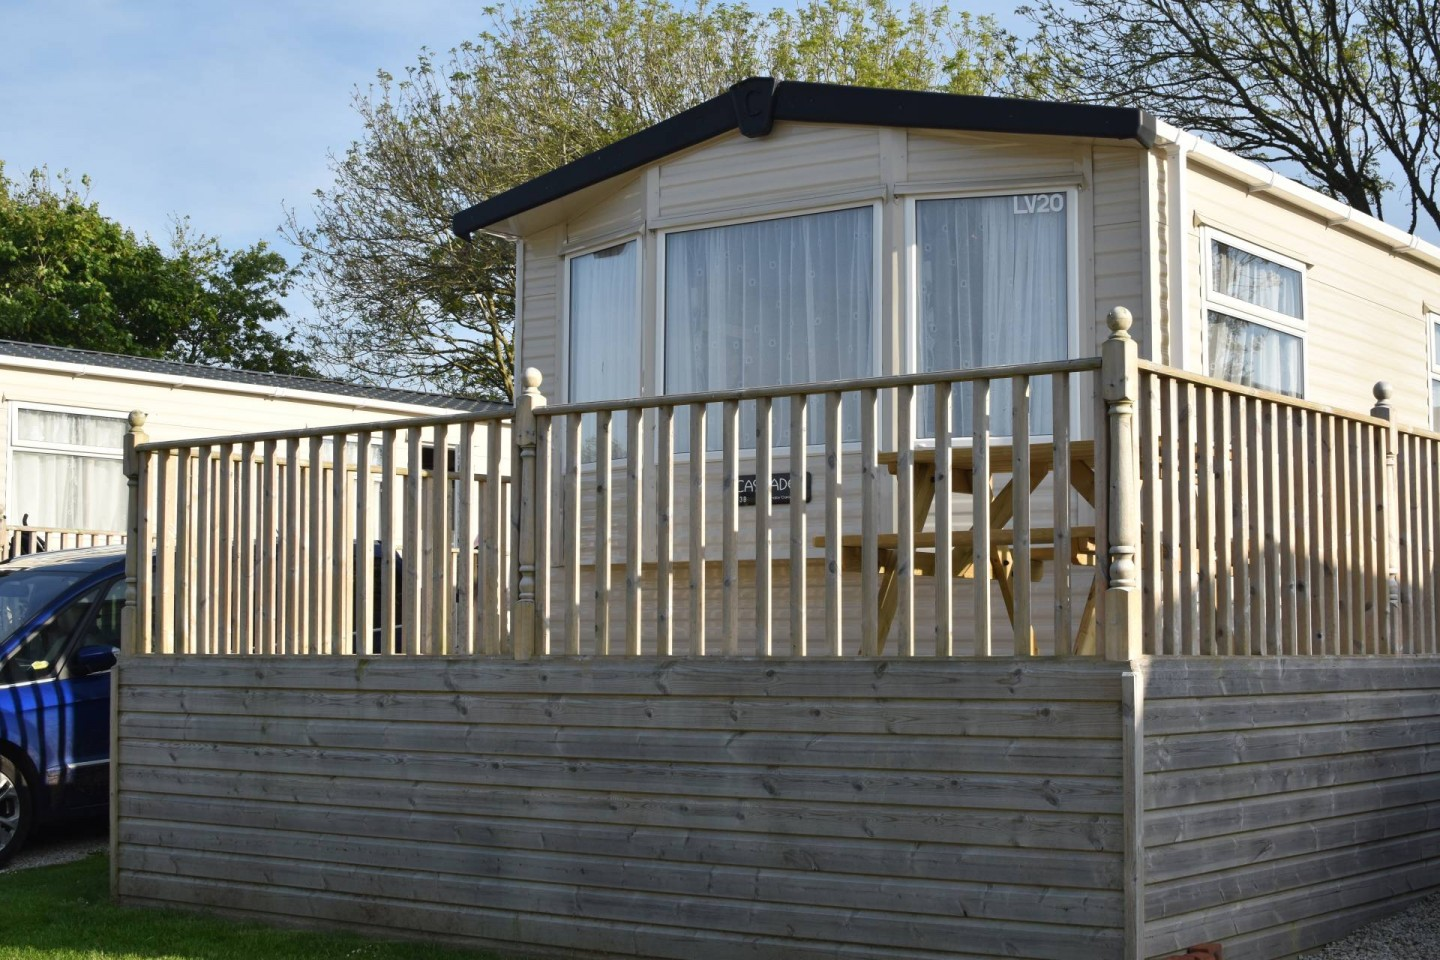 the beautiful setting of the Lake view caravans in Trevella Park, Crantock in Cornwall